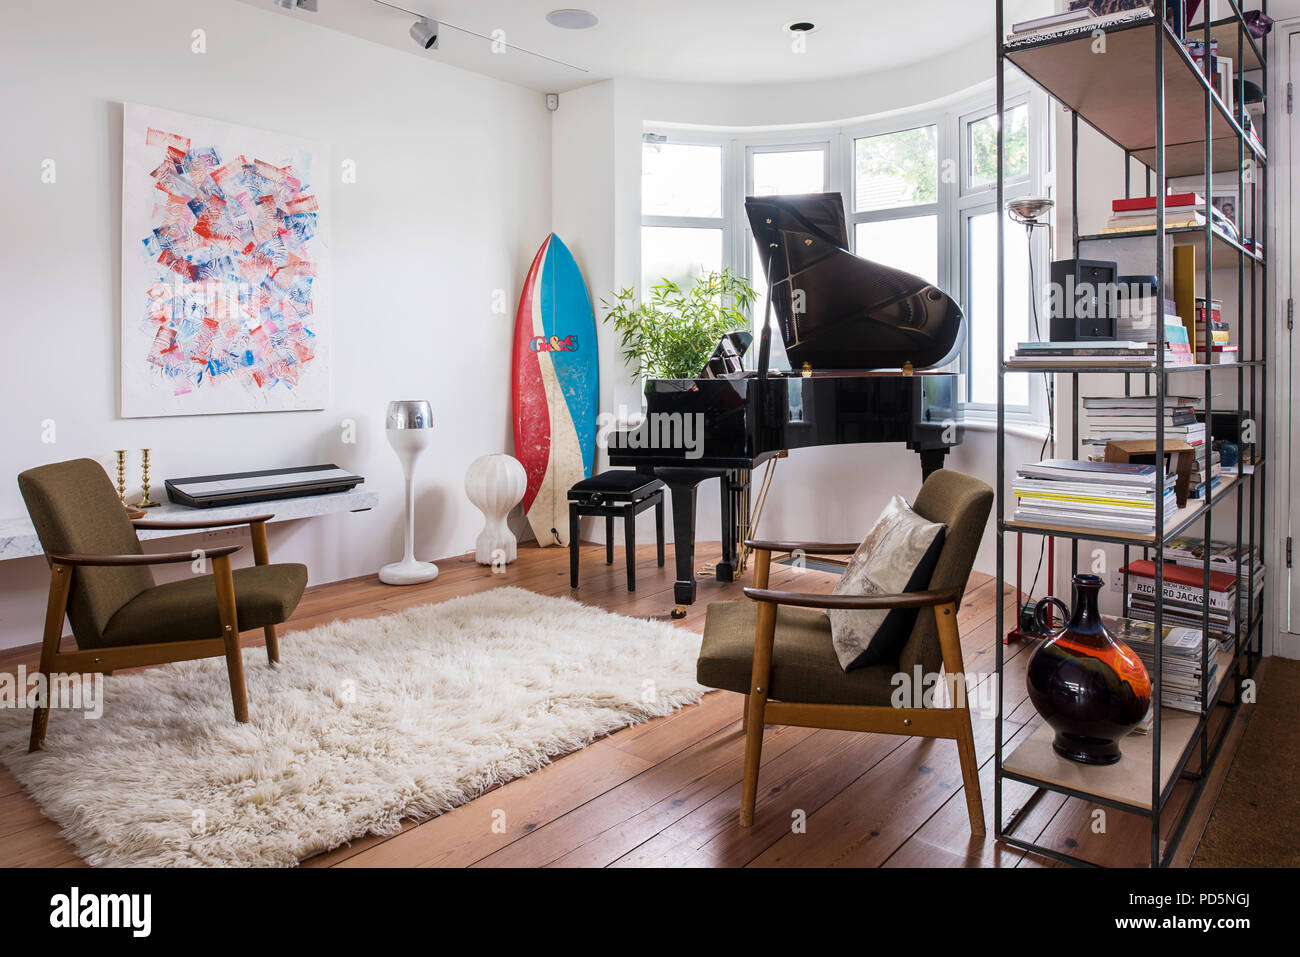 Open plan family home with surf board, grand piano and pair of retro armchairs - Stock Image